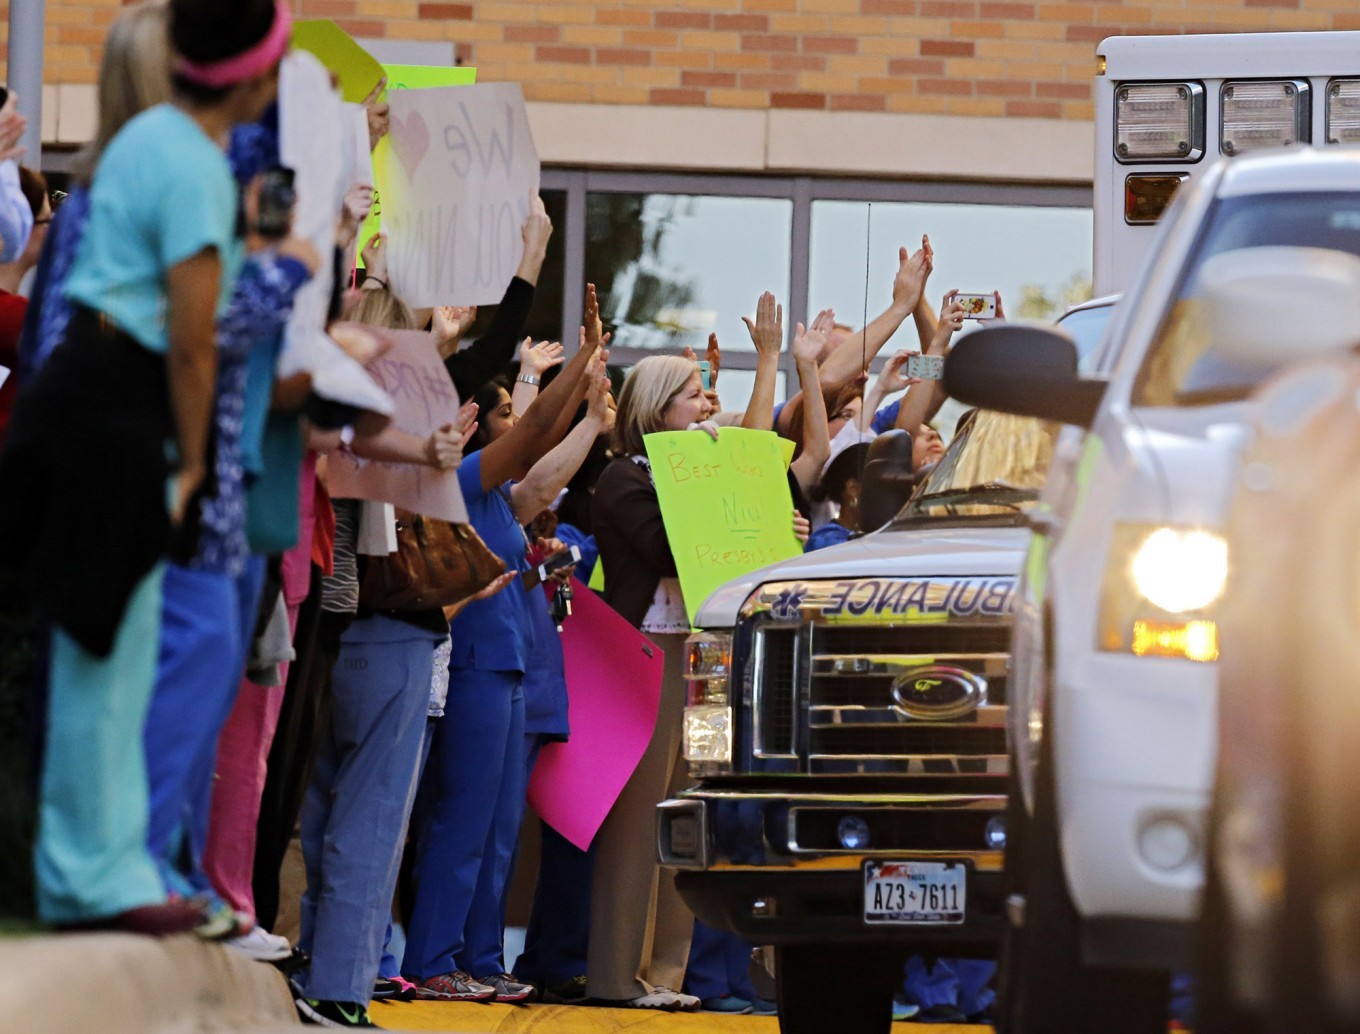 Hospital staff cheer as Nina Pham is driven via ambulance from Texas Health Presbyterian Hospital  to a plane at Dallas Love Field Thursday, October 16, 2014 in Dallas. (G.J. McCarthy/The Dallas Morning News)